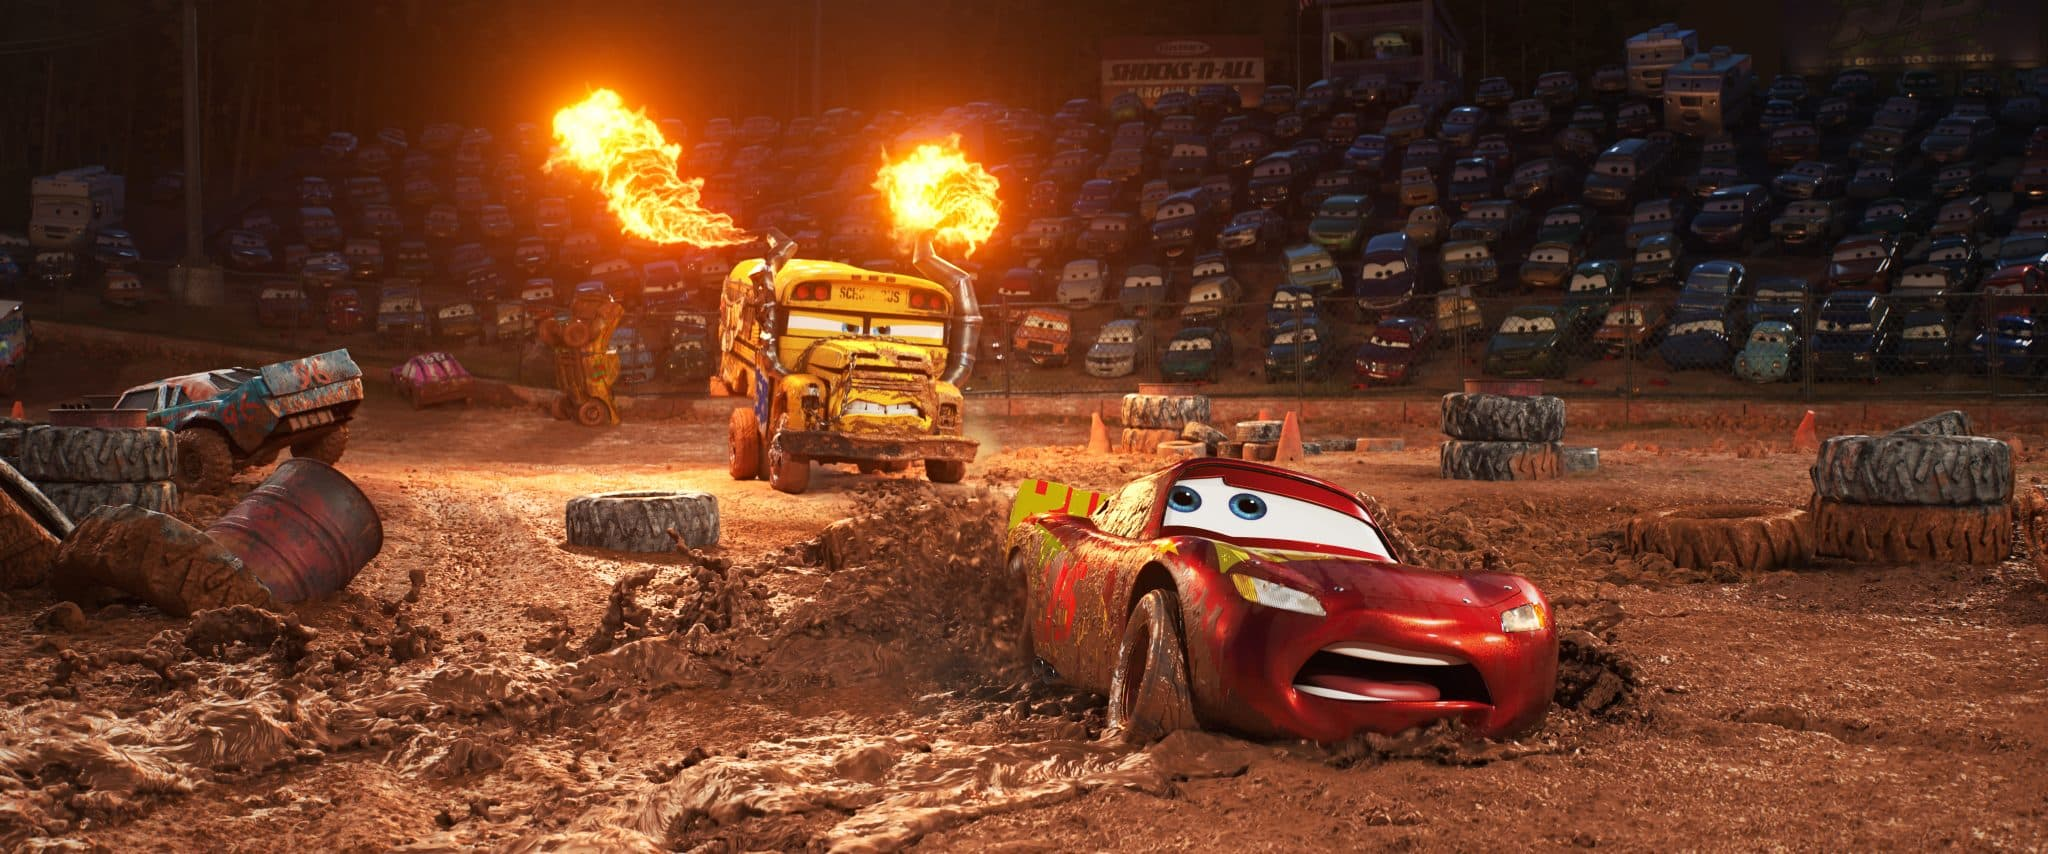 Free coloring pages cars 3 - Crazy 8 Drama In Cars 3 Lightning Mcqueen Voice Of Owen Wilson Hits The Road In An Effort To Reignite His Career Along The Way He Finds Himself In